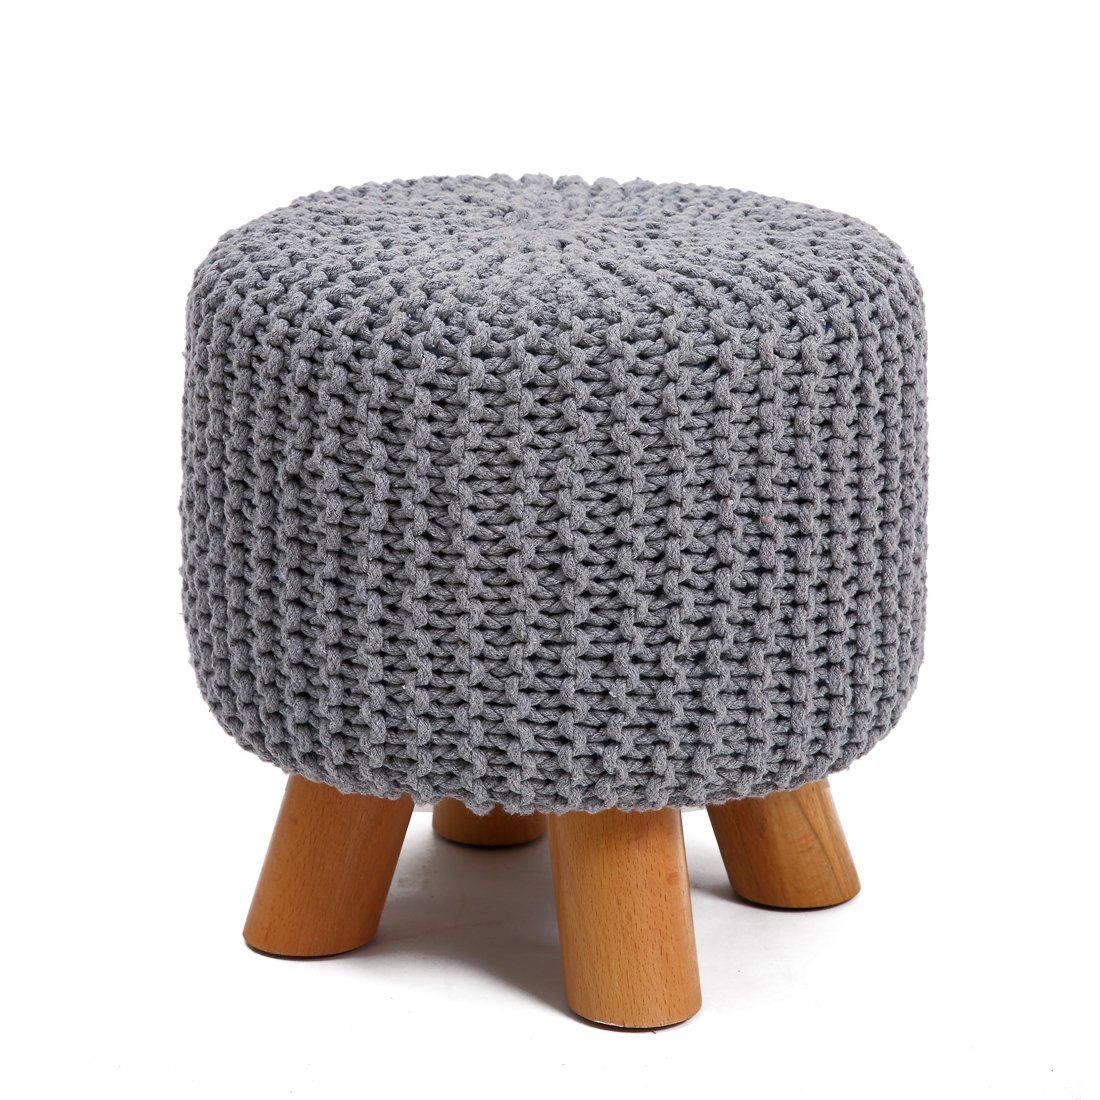 UUSSHOP Wood Support Upholstered Footrest Footstool Ottoman Pouffe Chair Stool Bench with 4 Beech Legs and Removable Handmade Knitted Woven Cotton Cover (Grey)